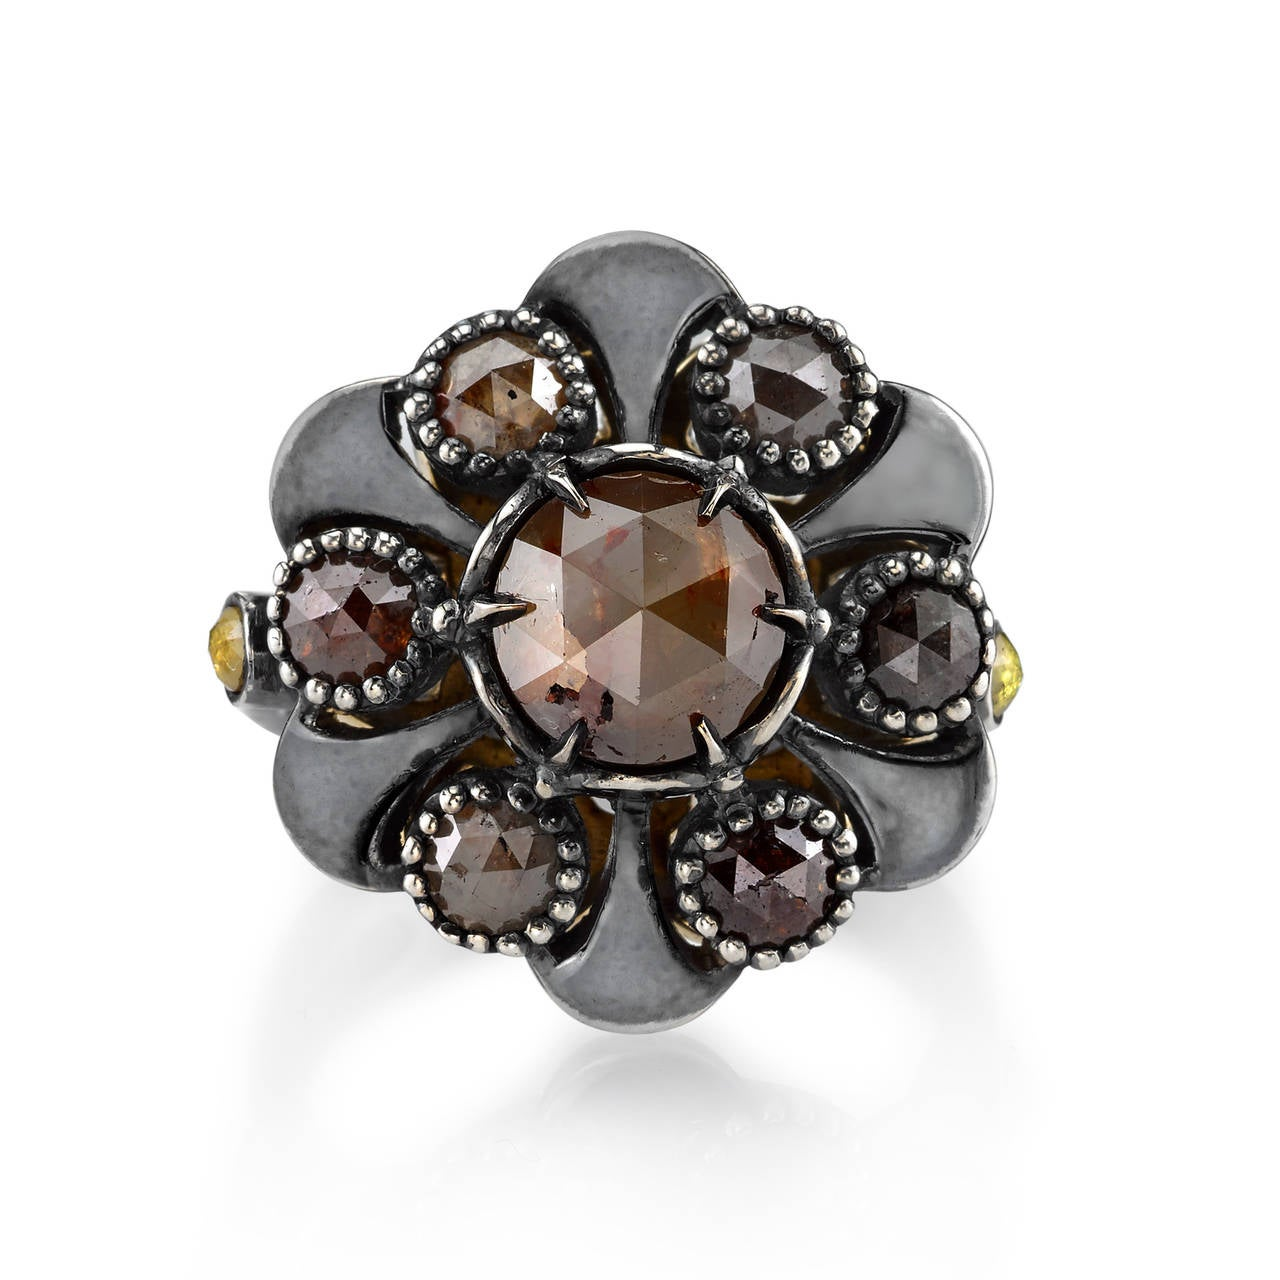 Rustic Diamond: Rustic Diamond Organic Silver Flower Ring For Sale At 1stdibs